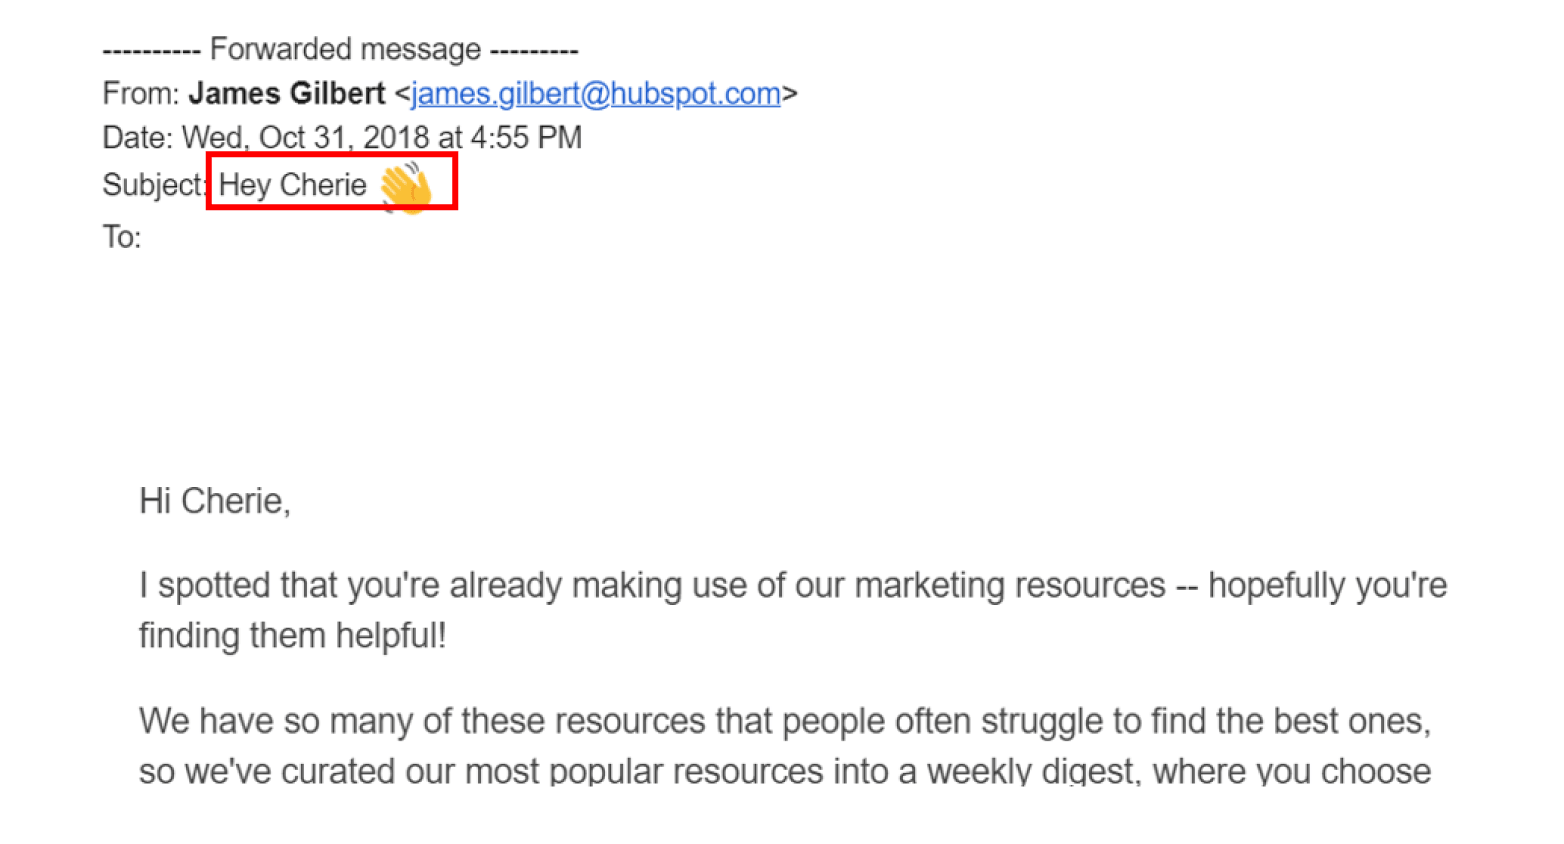 Personalize subject lines